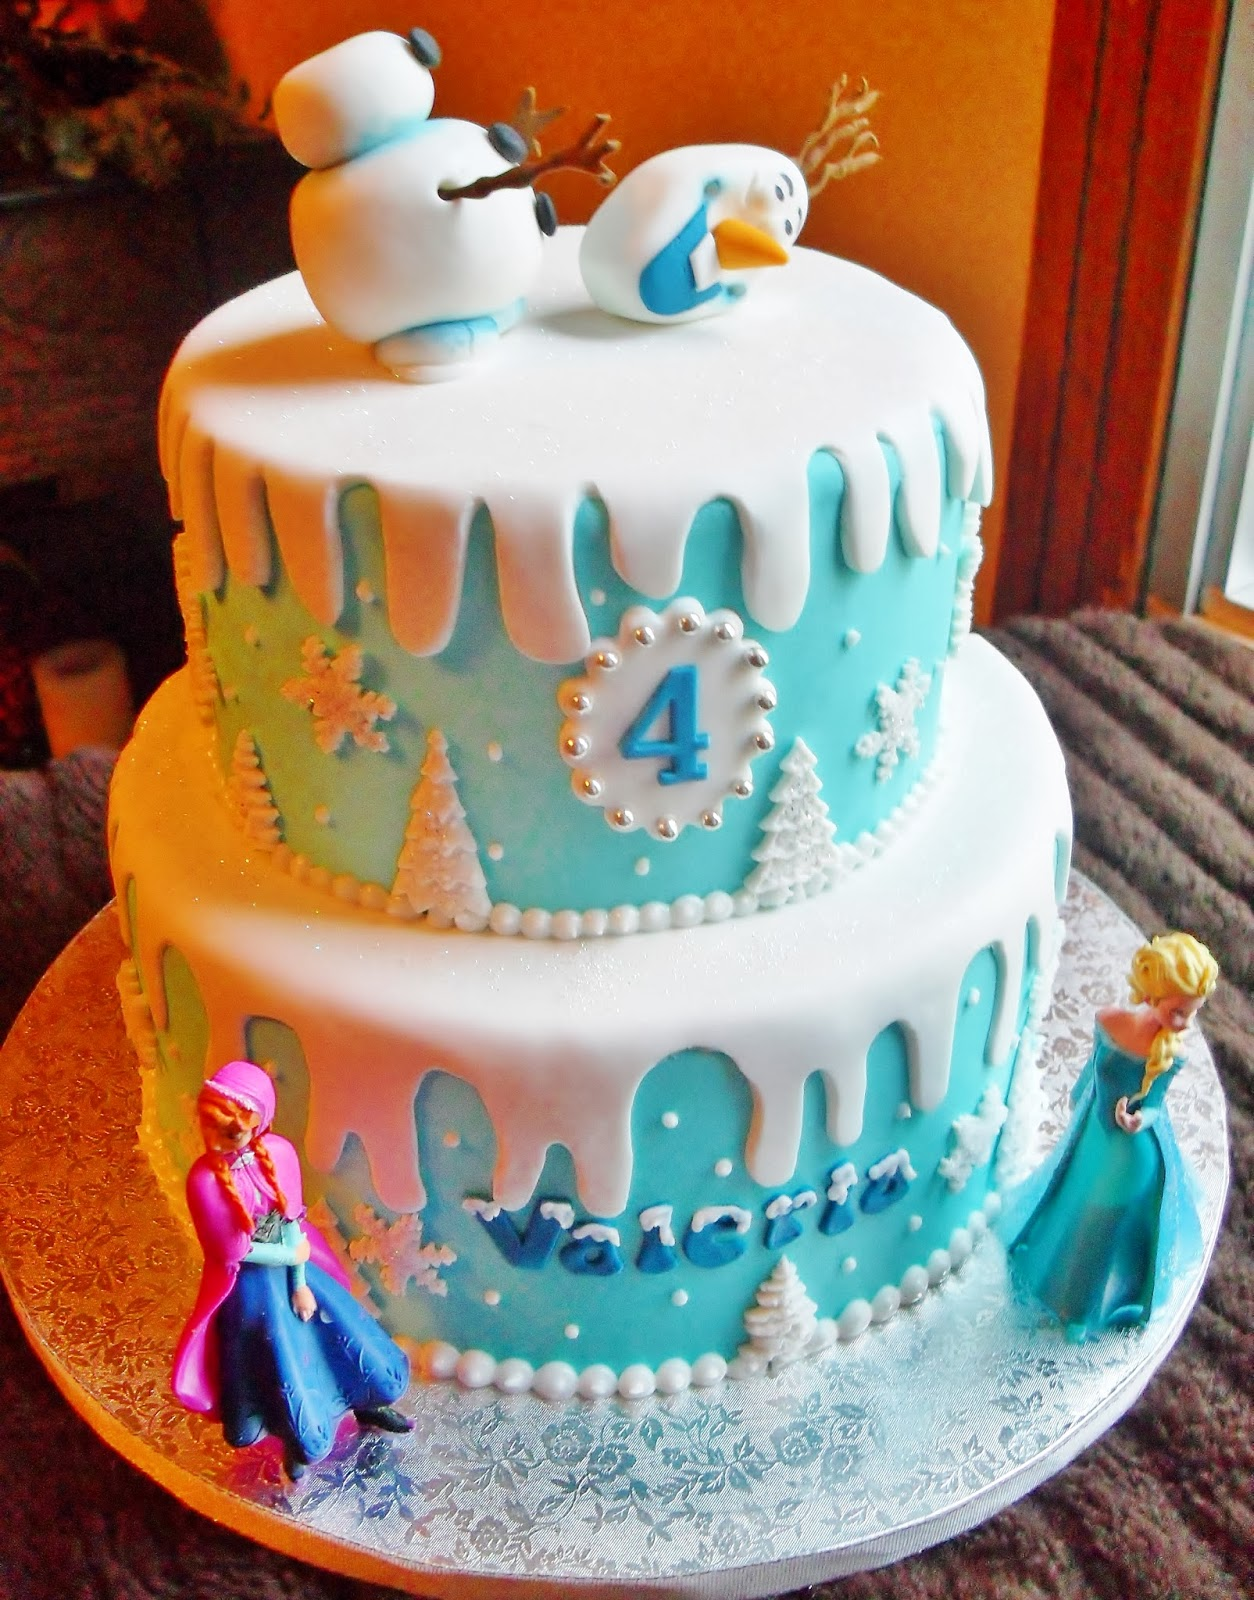 Cake Images With Frozen : Frozen Cake - Cakes Photo (36769270) - Fanpop